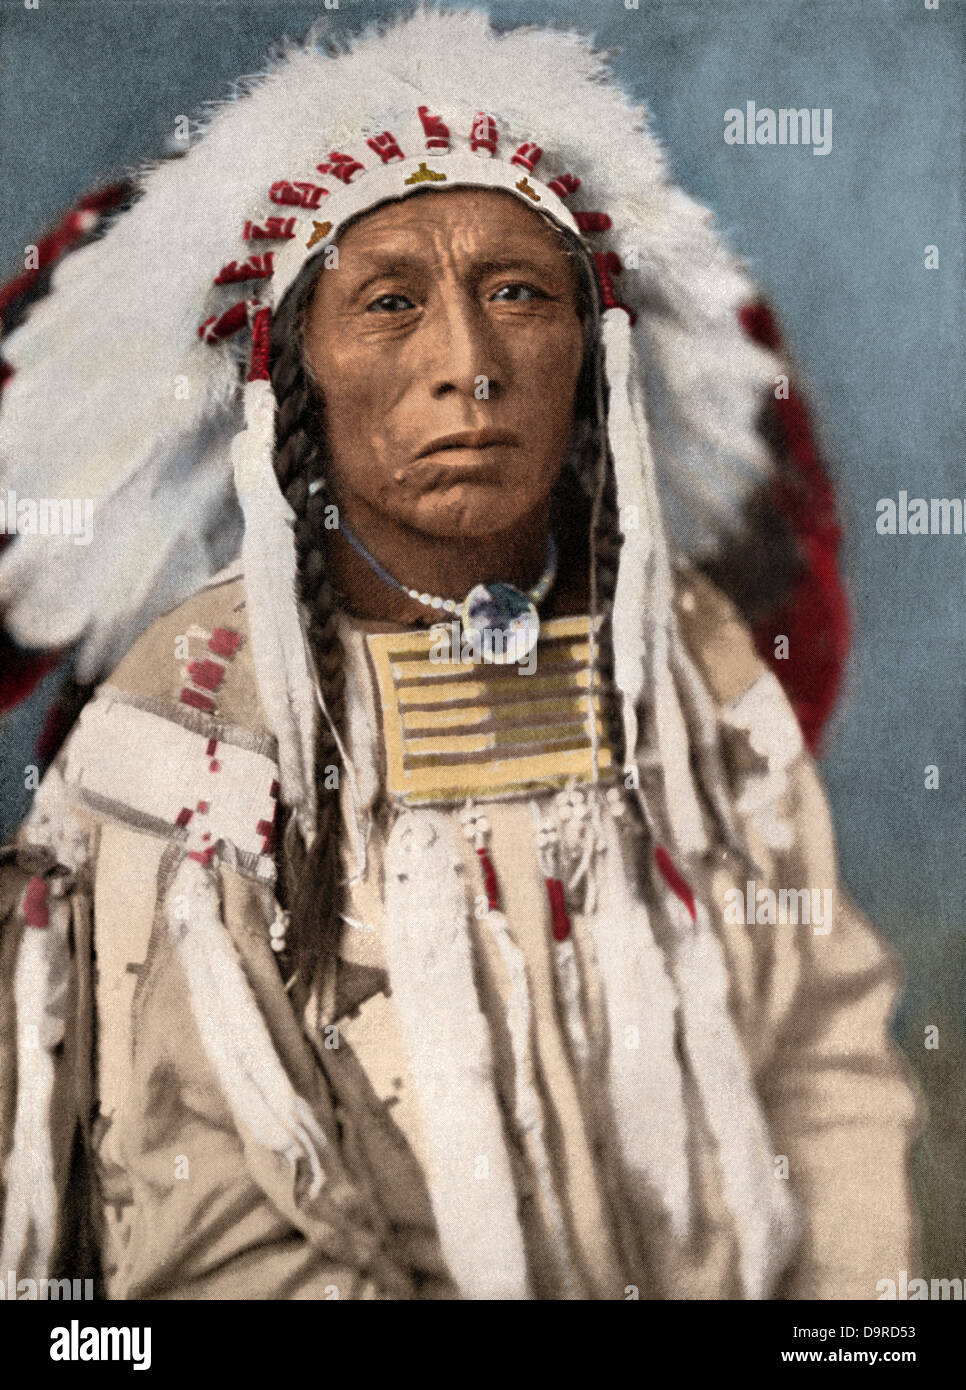 Crow Indian chief in a traditional war bonnet and clothing, circa 1900. Hand-colored halftone of a photograph - Stock Image